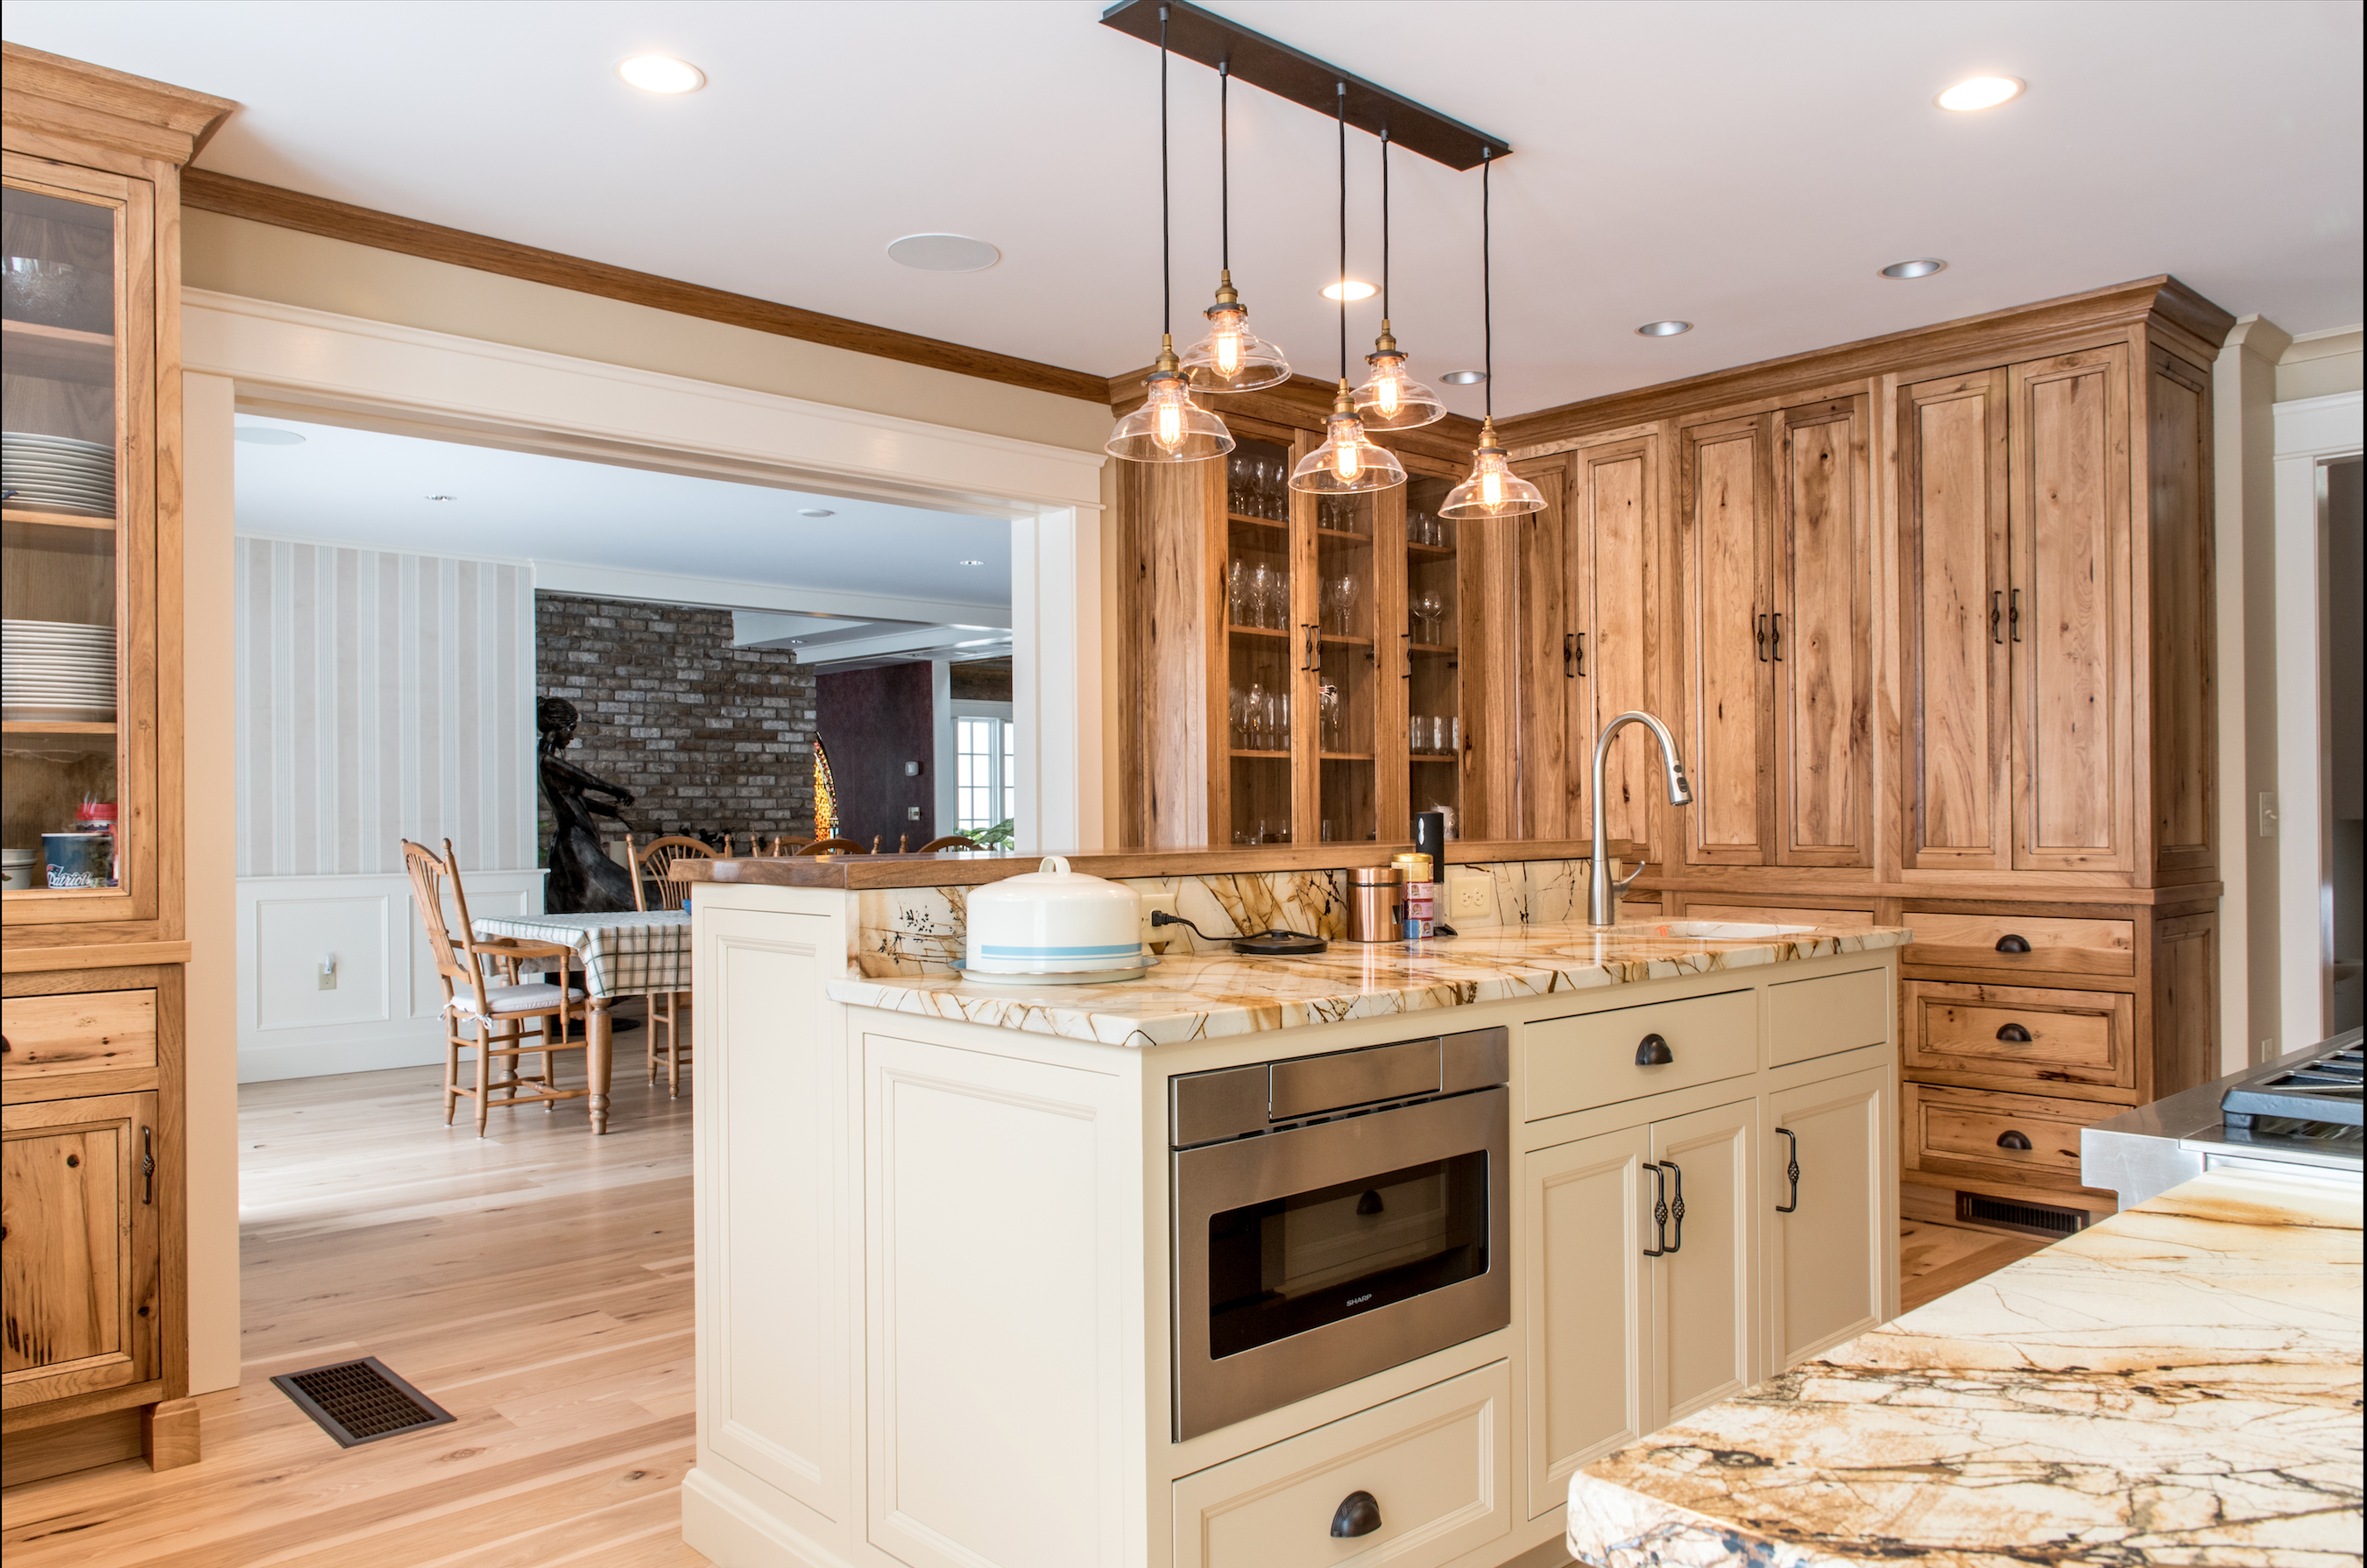 Rustic Kitchen remodel Rehoboth MA Full inset cabinetry